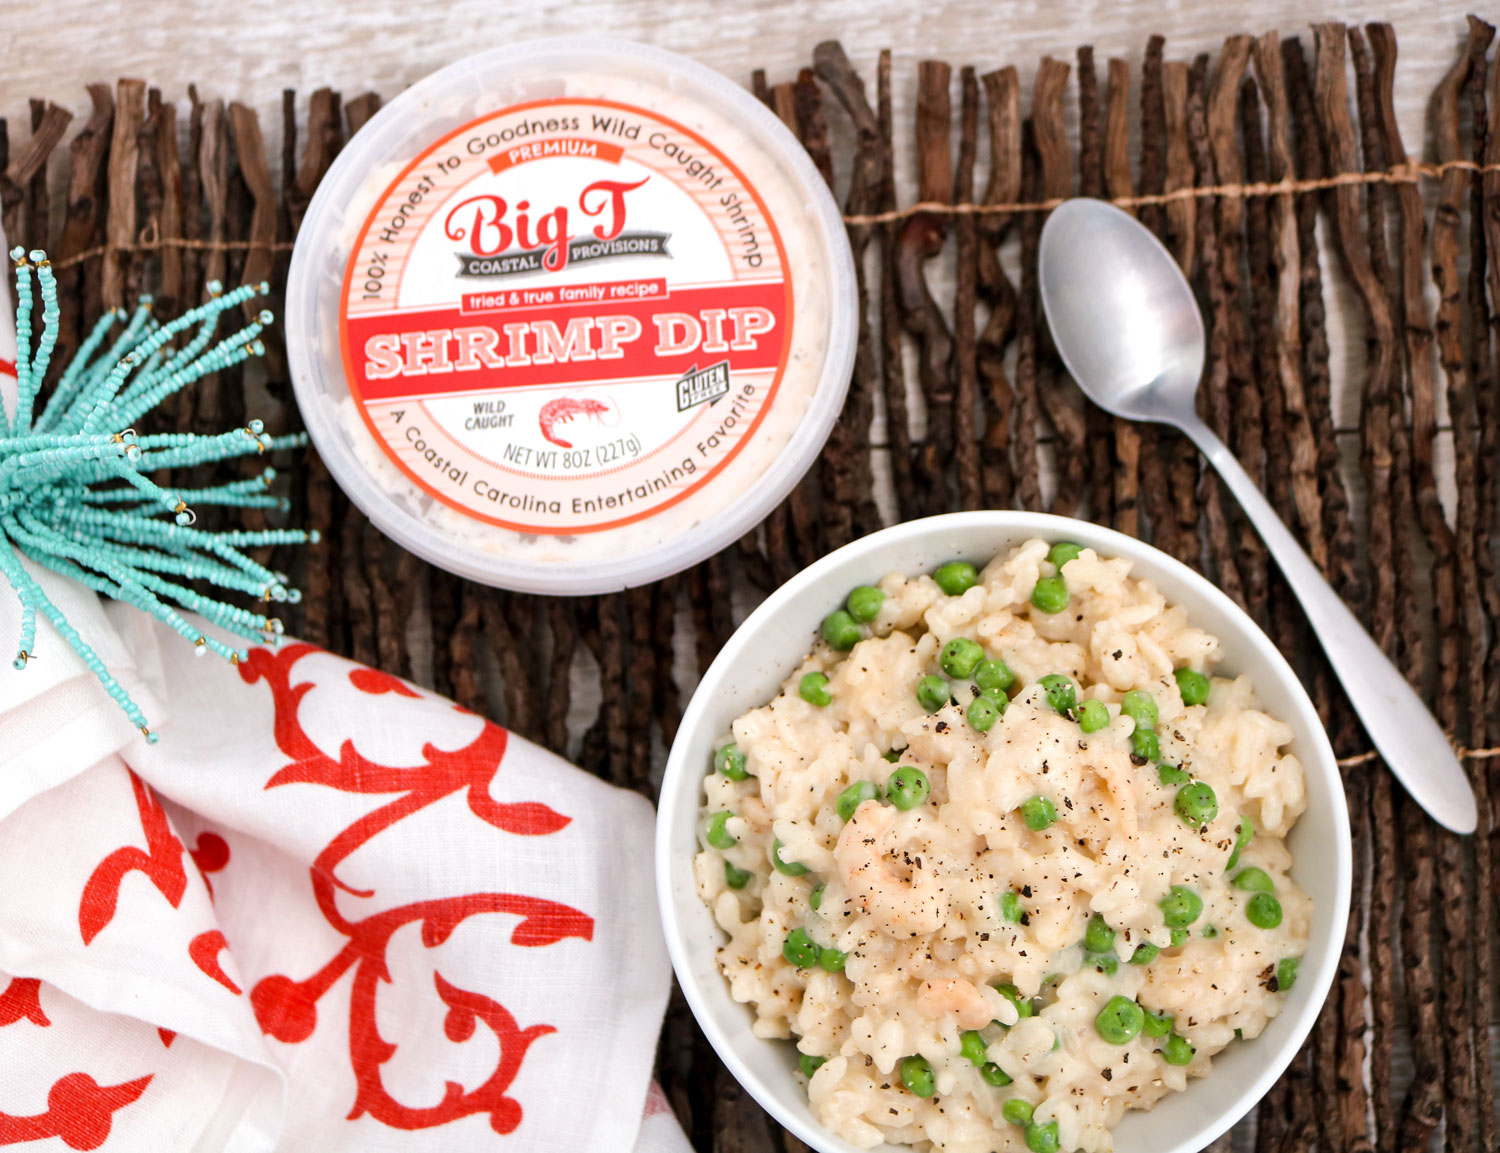 Shrimp-and-Sweet-Pea-Risotto-serving-suggestion.jpg